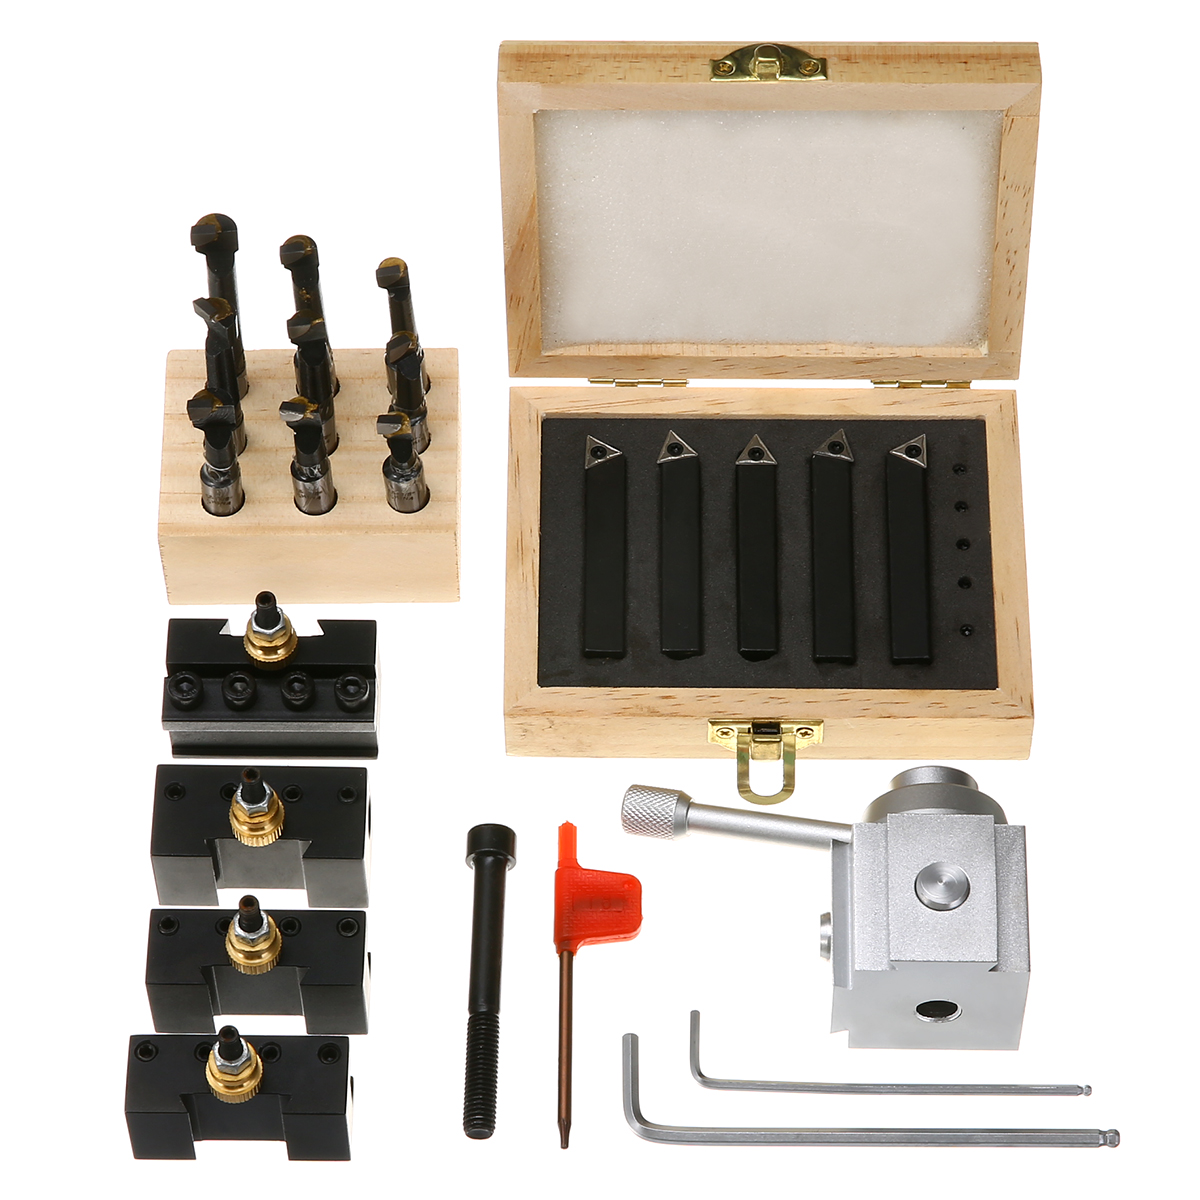 Mayitr 9pcs 3/8 Boring Bar + 5pcs Quick Change Tool Post Holder + 5pcs 3/8 Turning Tool Holder with Wooden Box free shipping quick change m type external turning tool usage holder mssnr l for carbide insert snmg120408